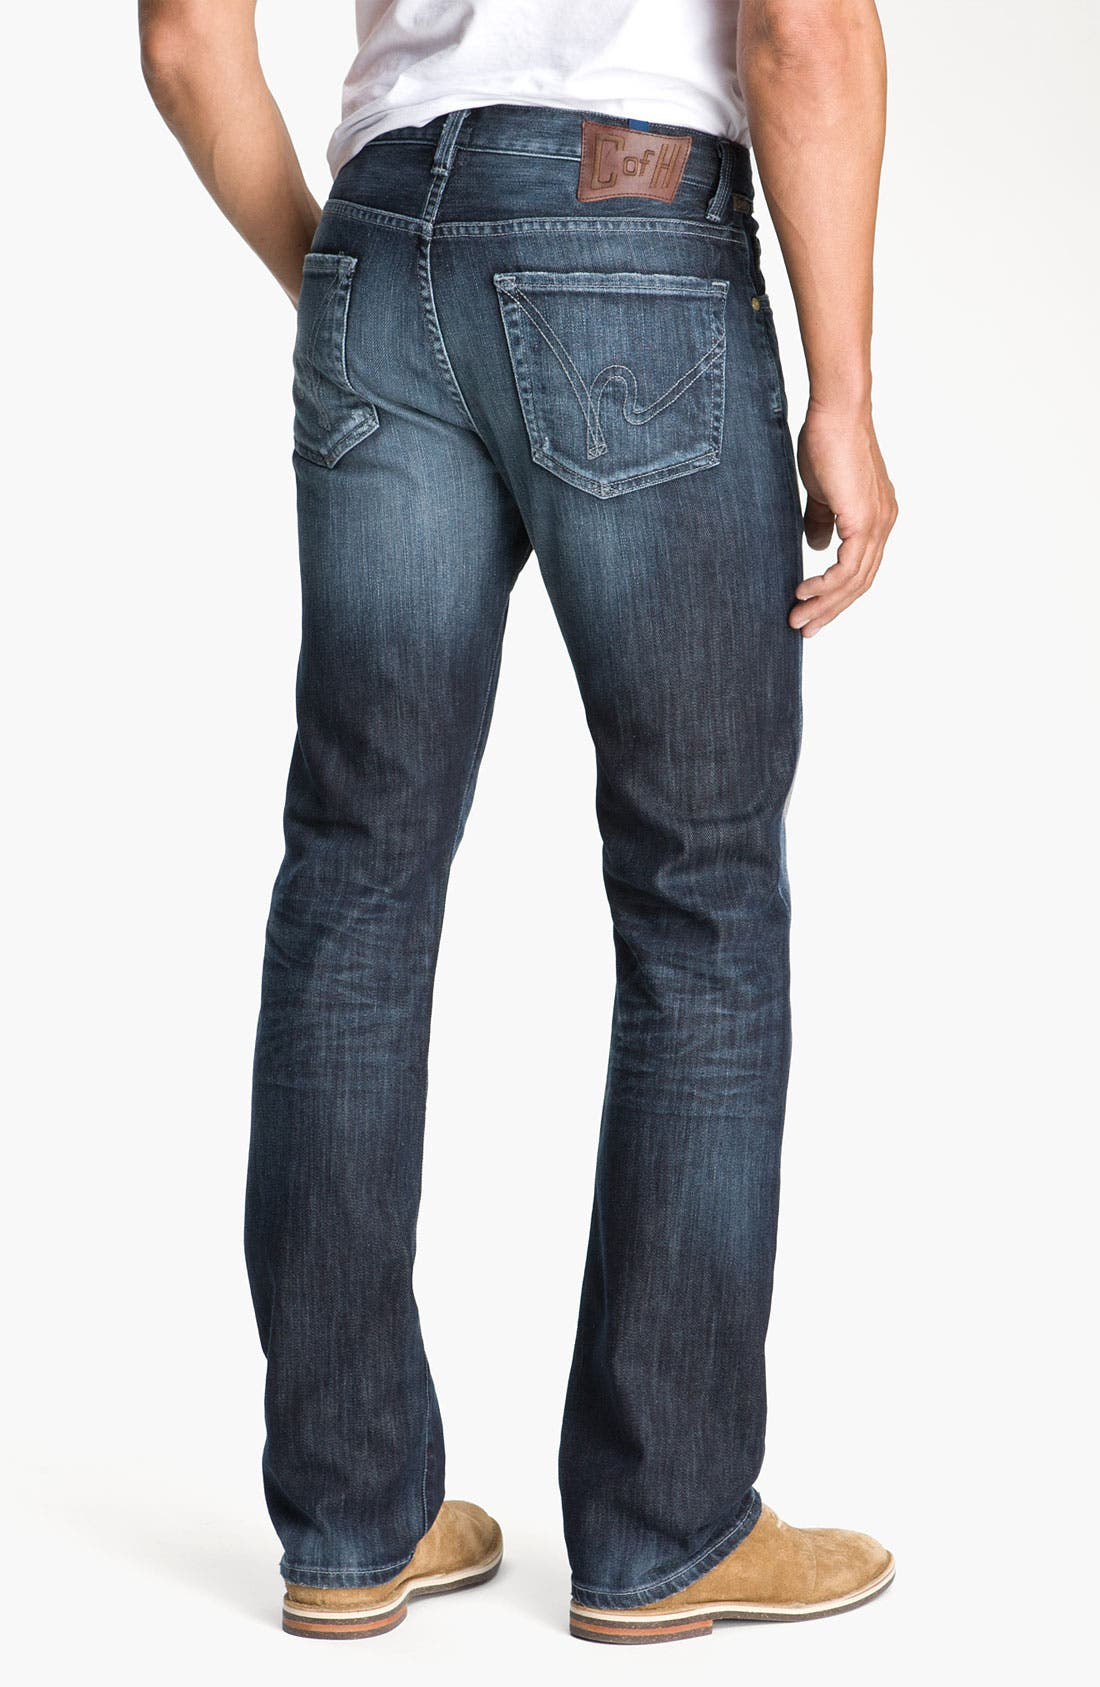 Alternate Image 1 Selected - Citizens of Humanity 'Sid' Straight Leg Jeans (Standard)